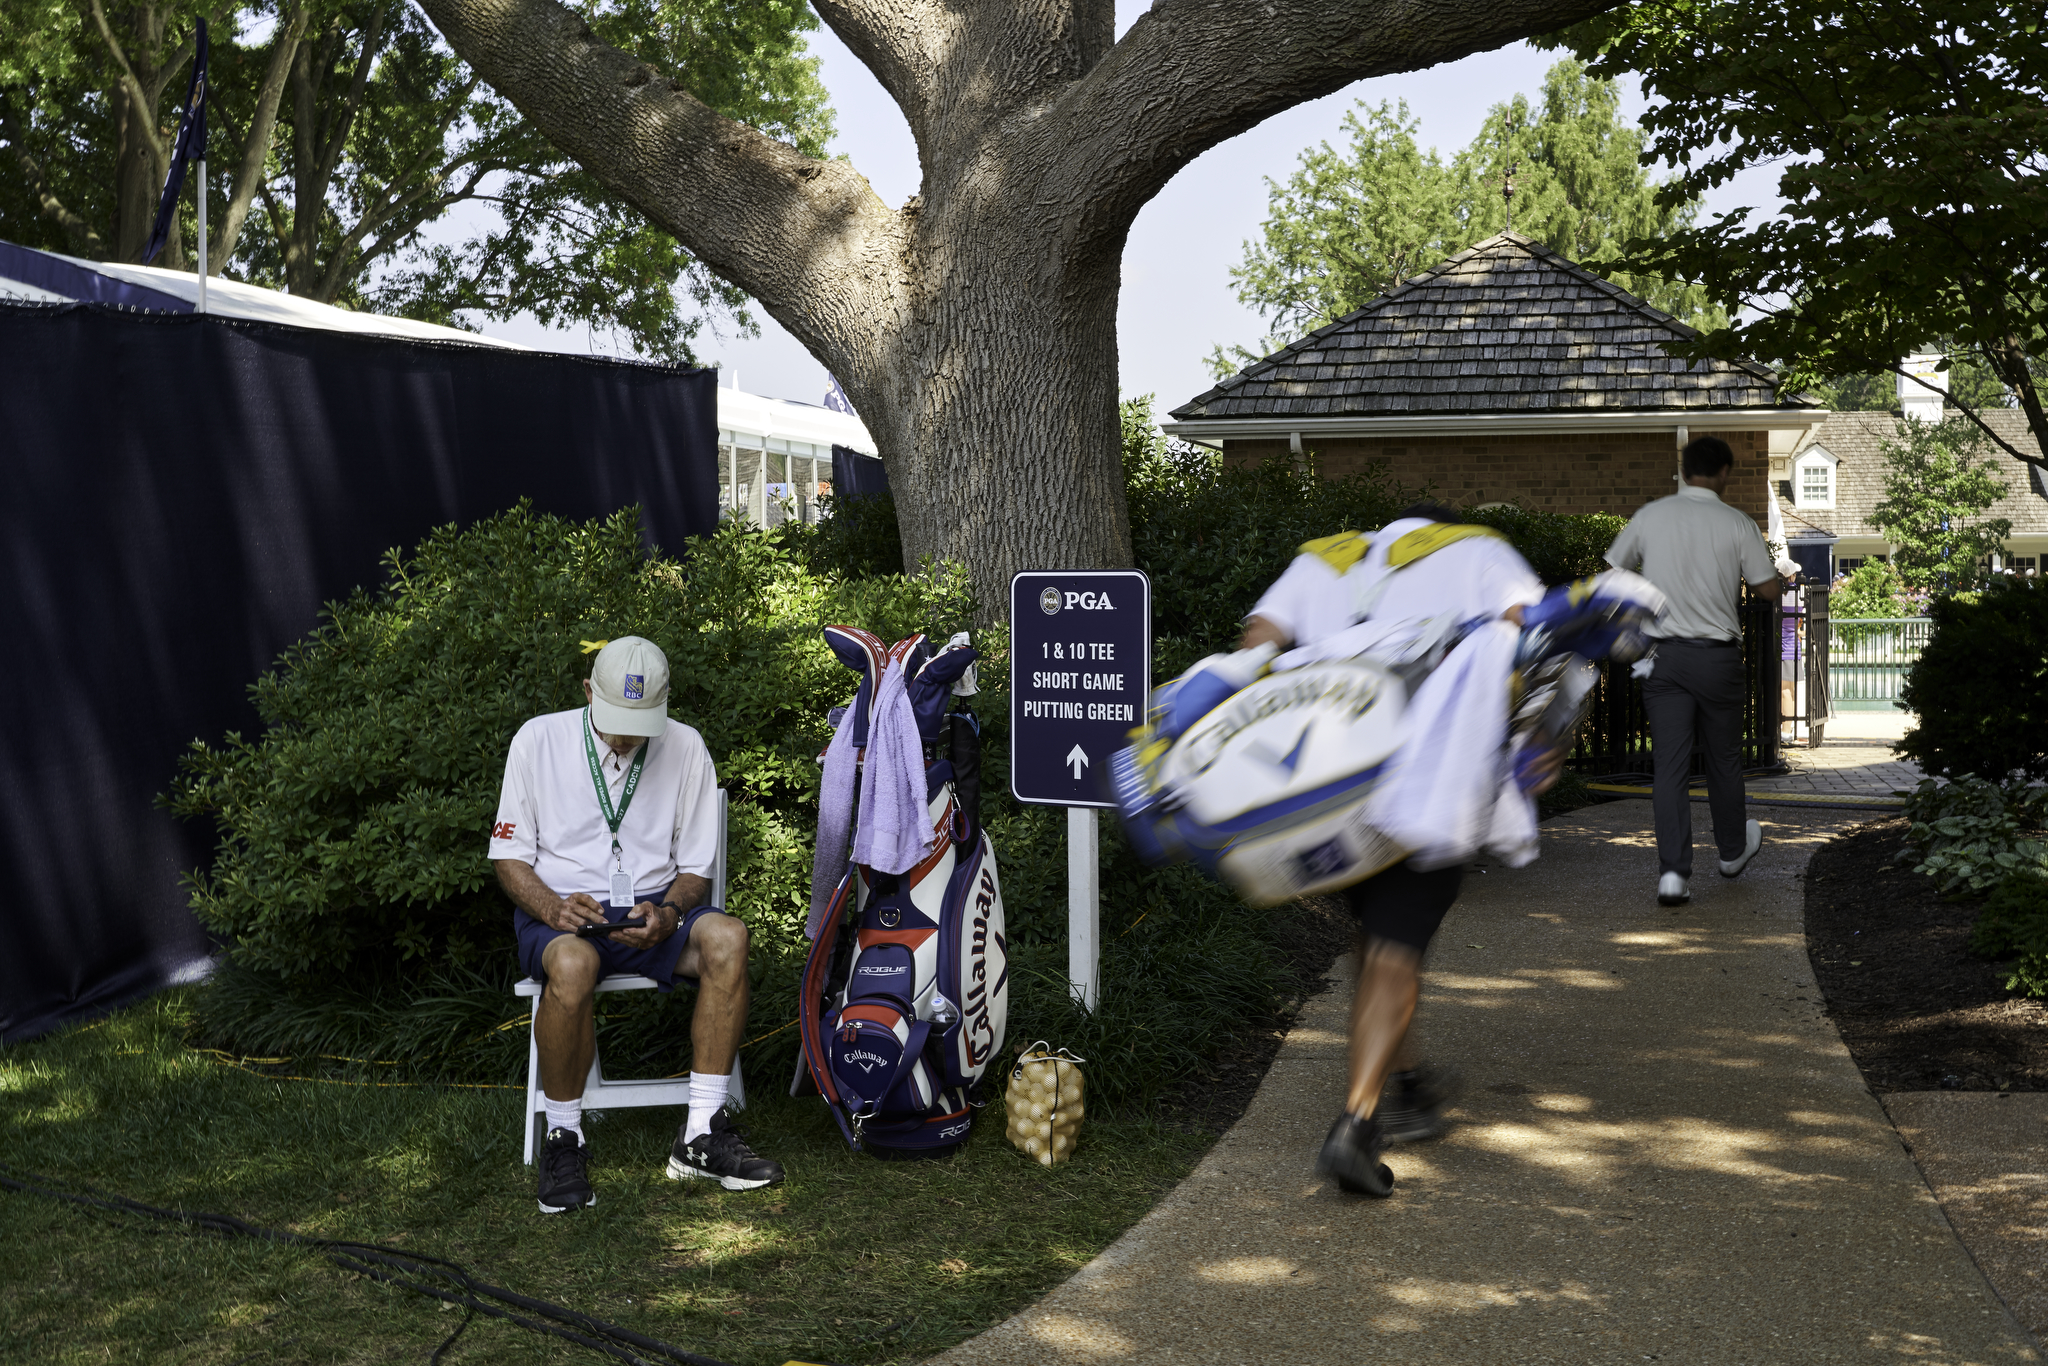 """Mike """"Fluff"""" Cowan, Jim Furyk's caddie, waits for his man in what is normally the club's pool area.  (Sony A9, Sony 100-400mm f4.5-5.6 GM-OSS)"""